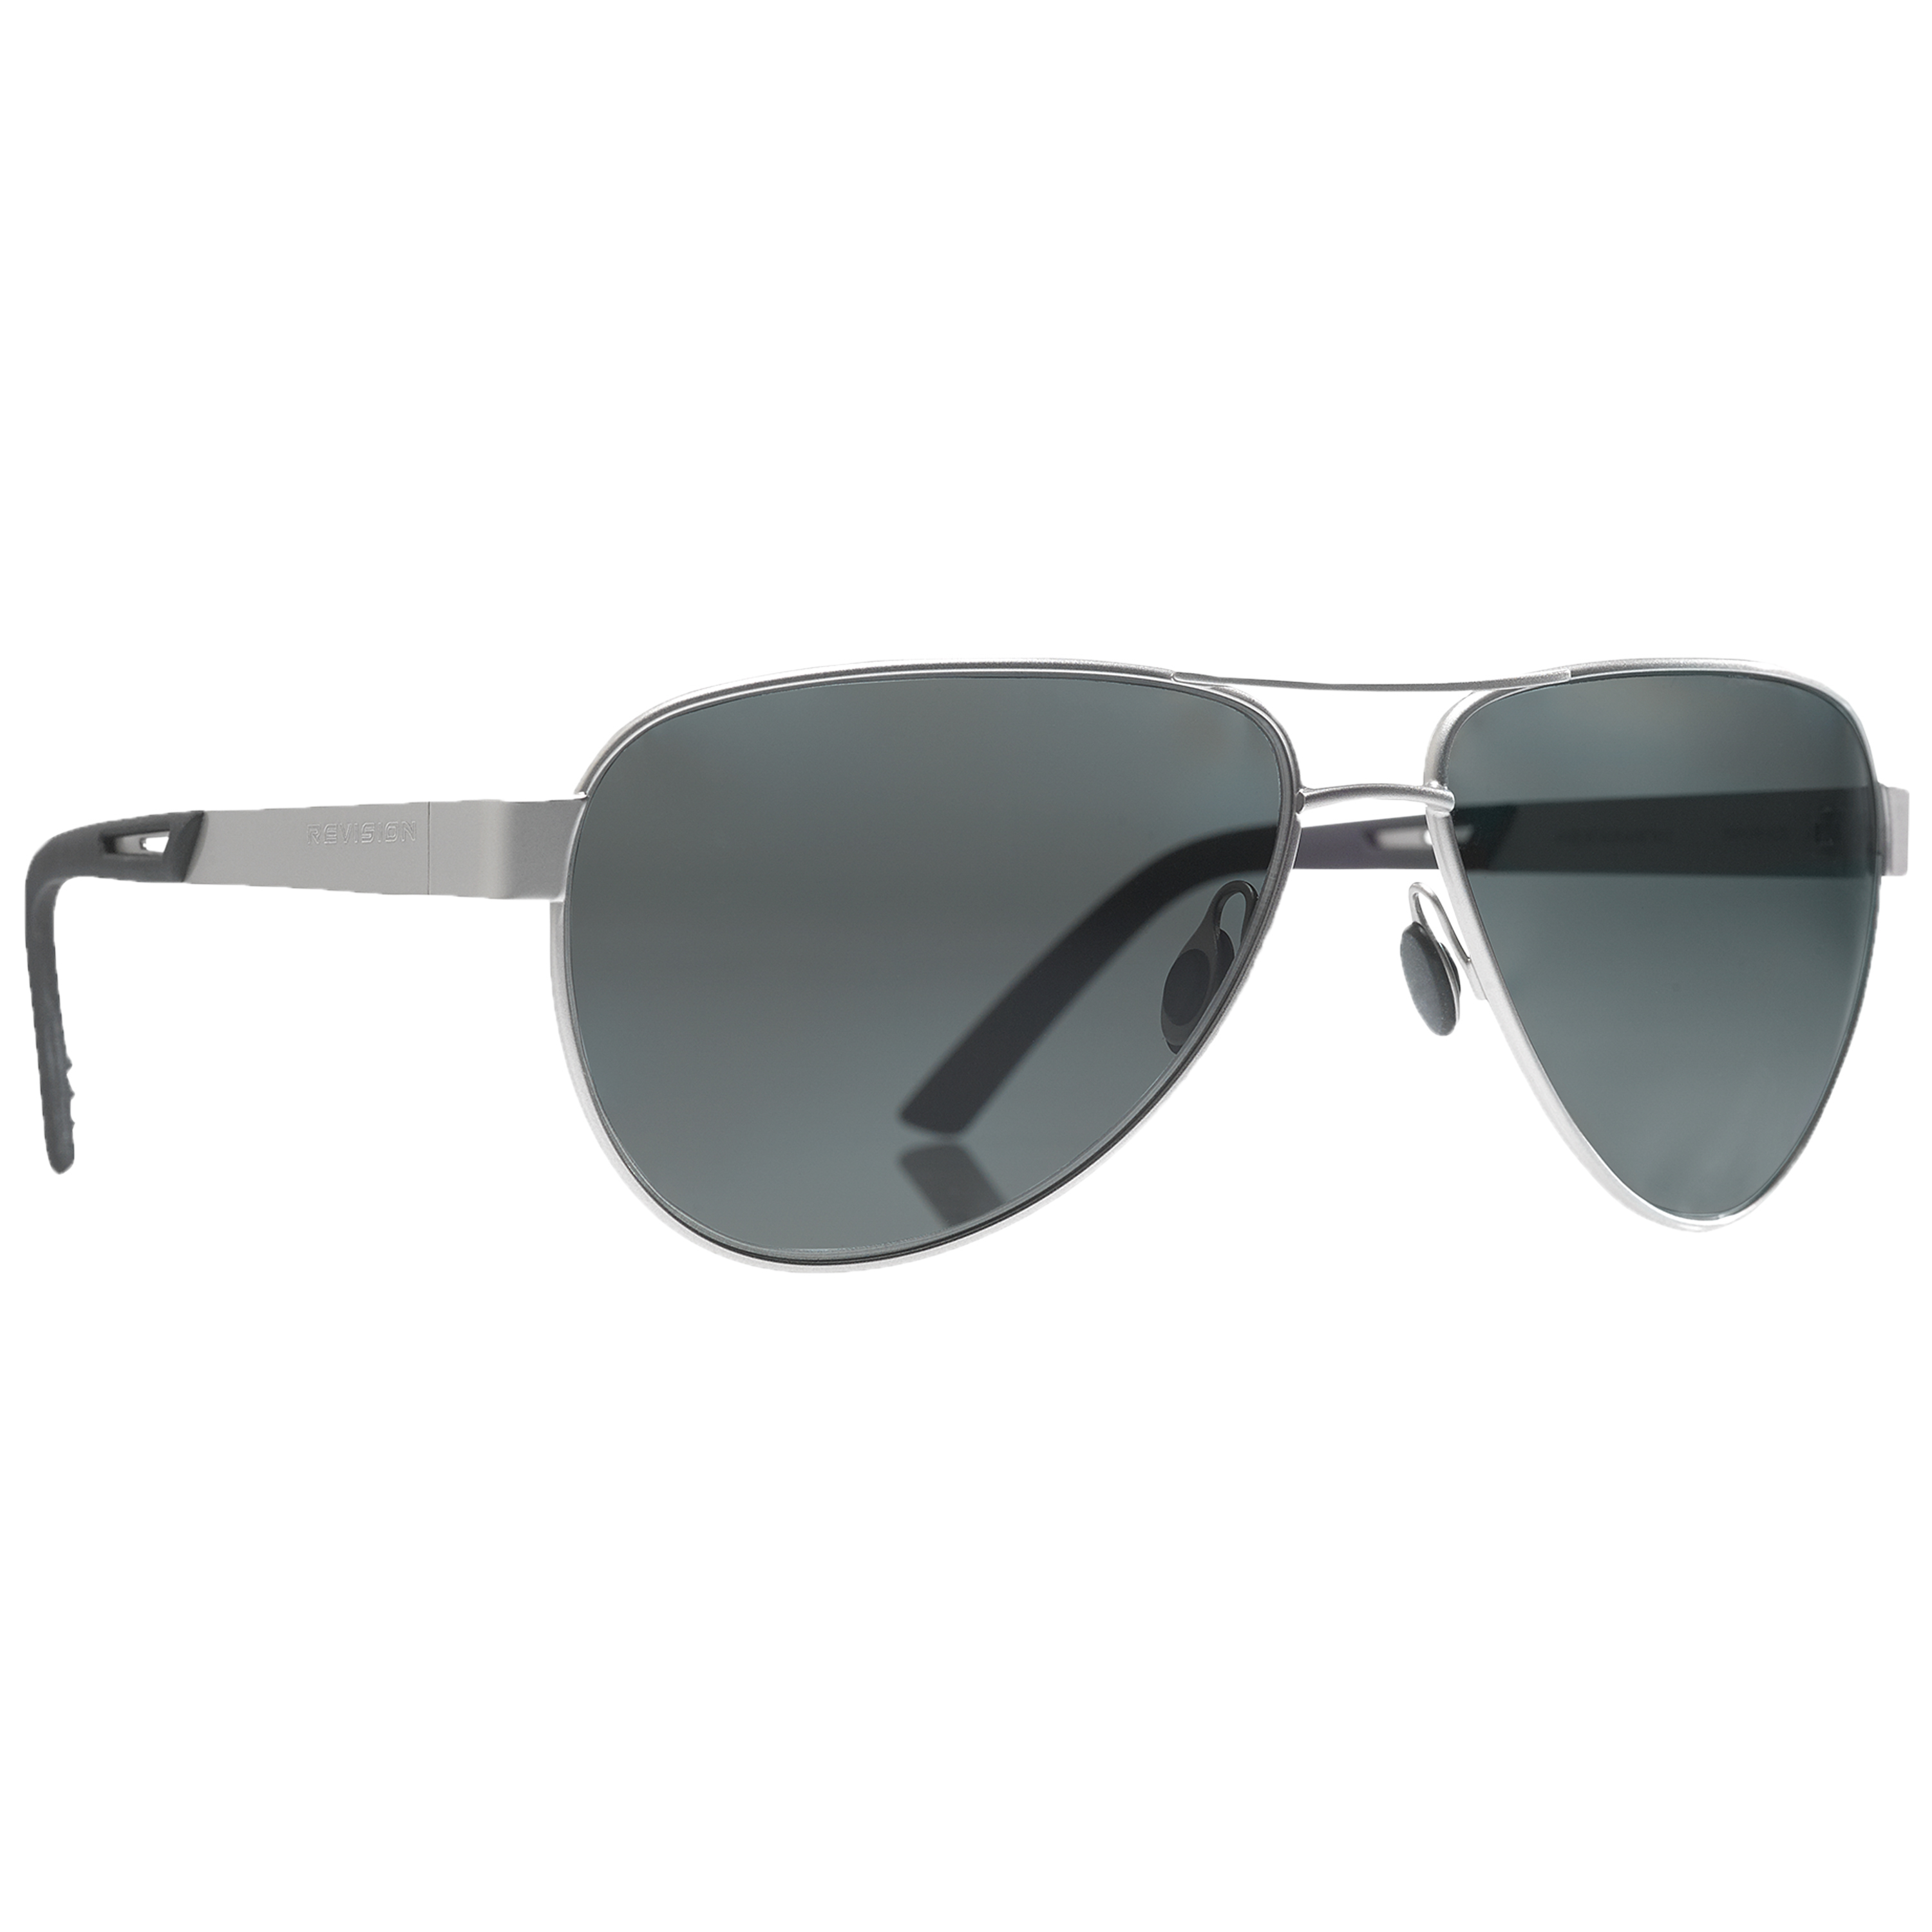 Revision Brille Alphawing Sport polarized